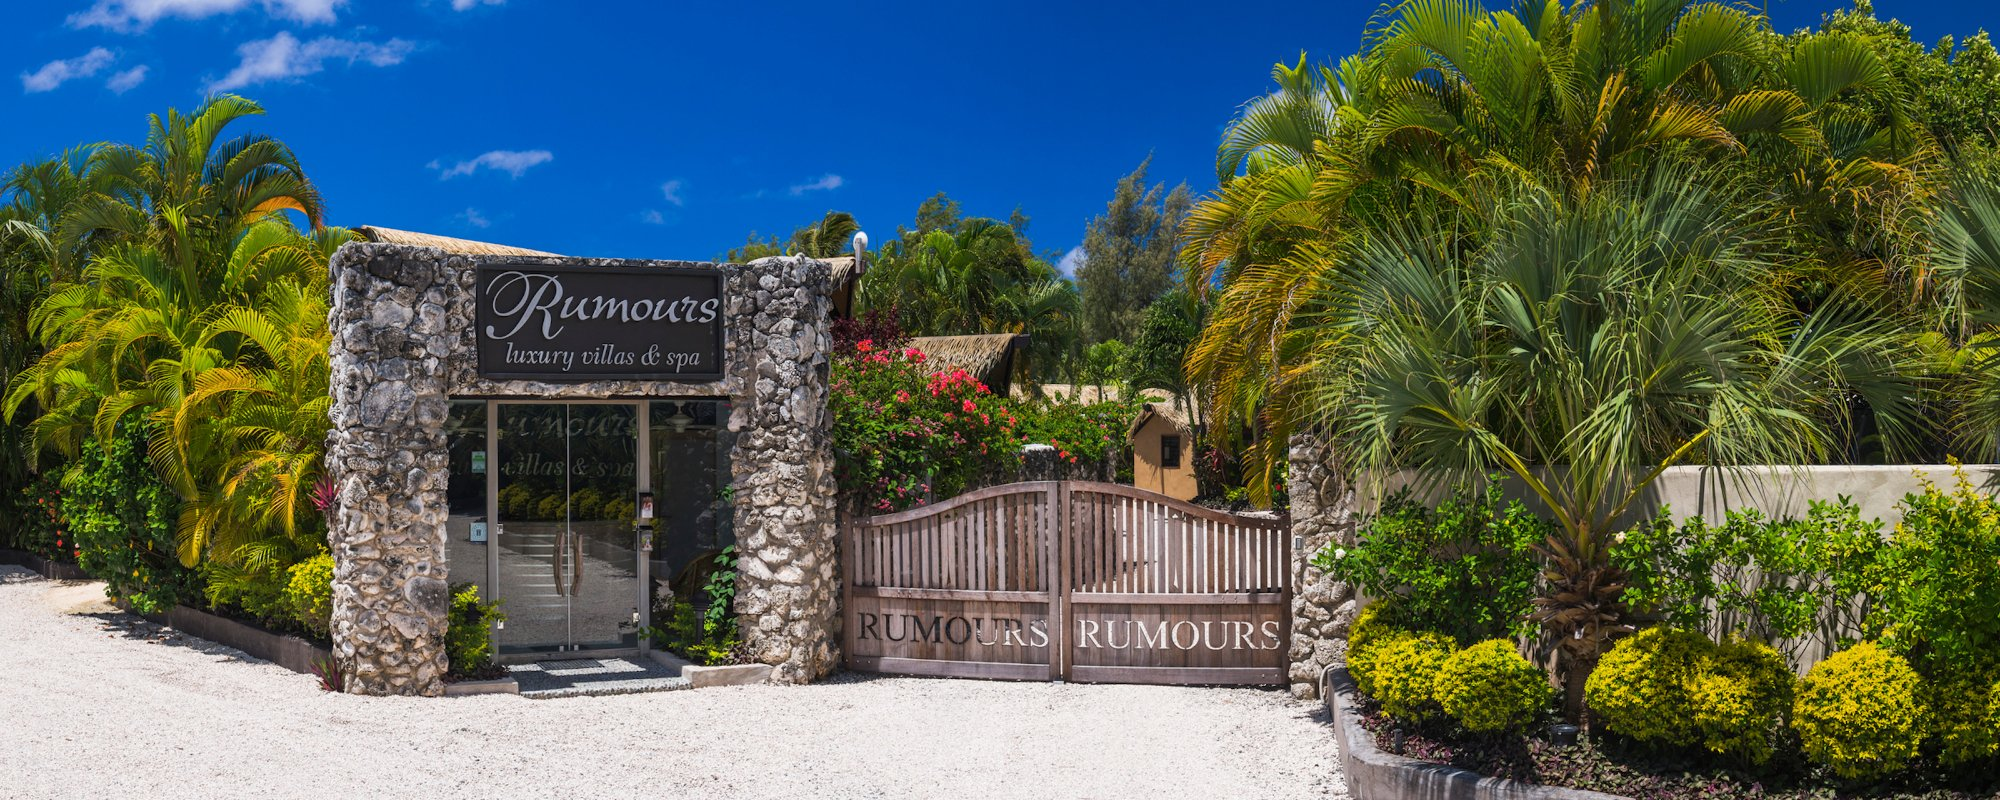 Rumours Luxury Villas and Spa